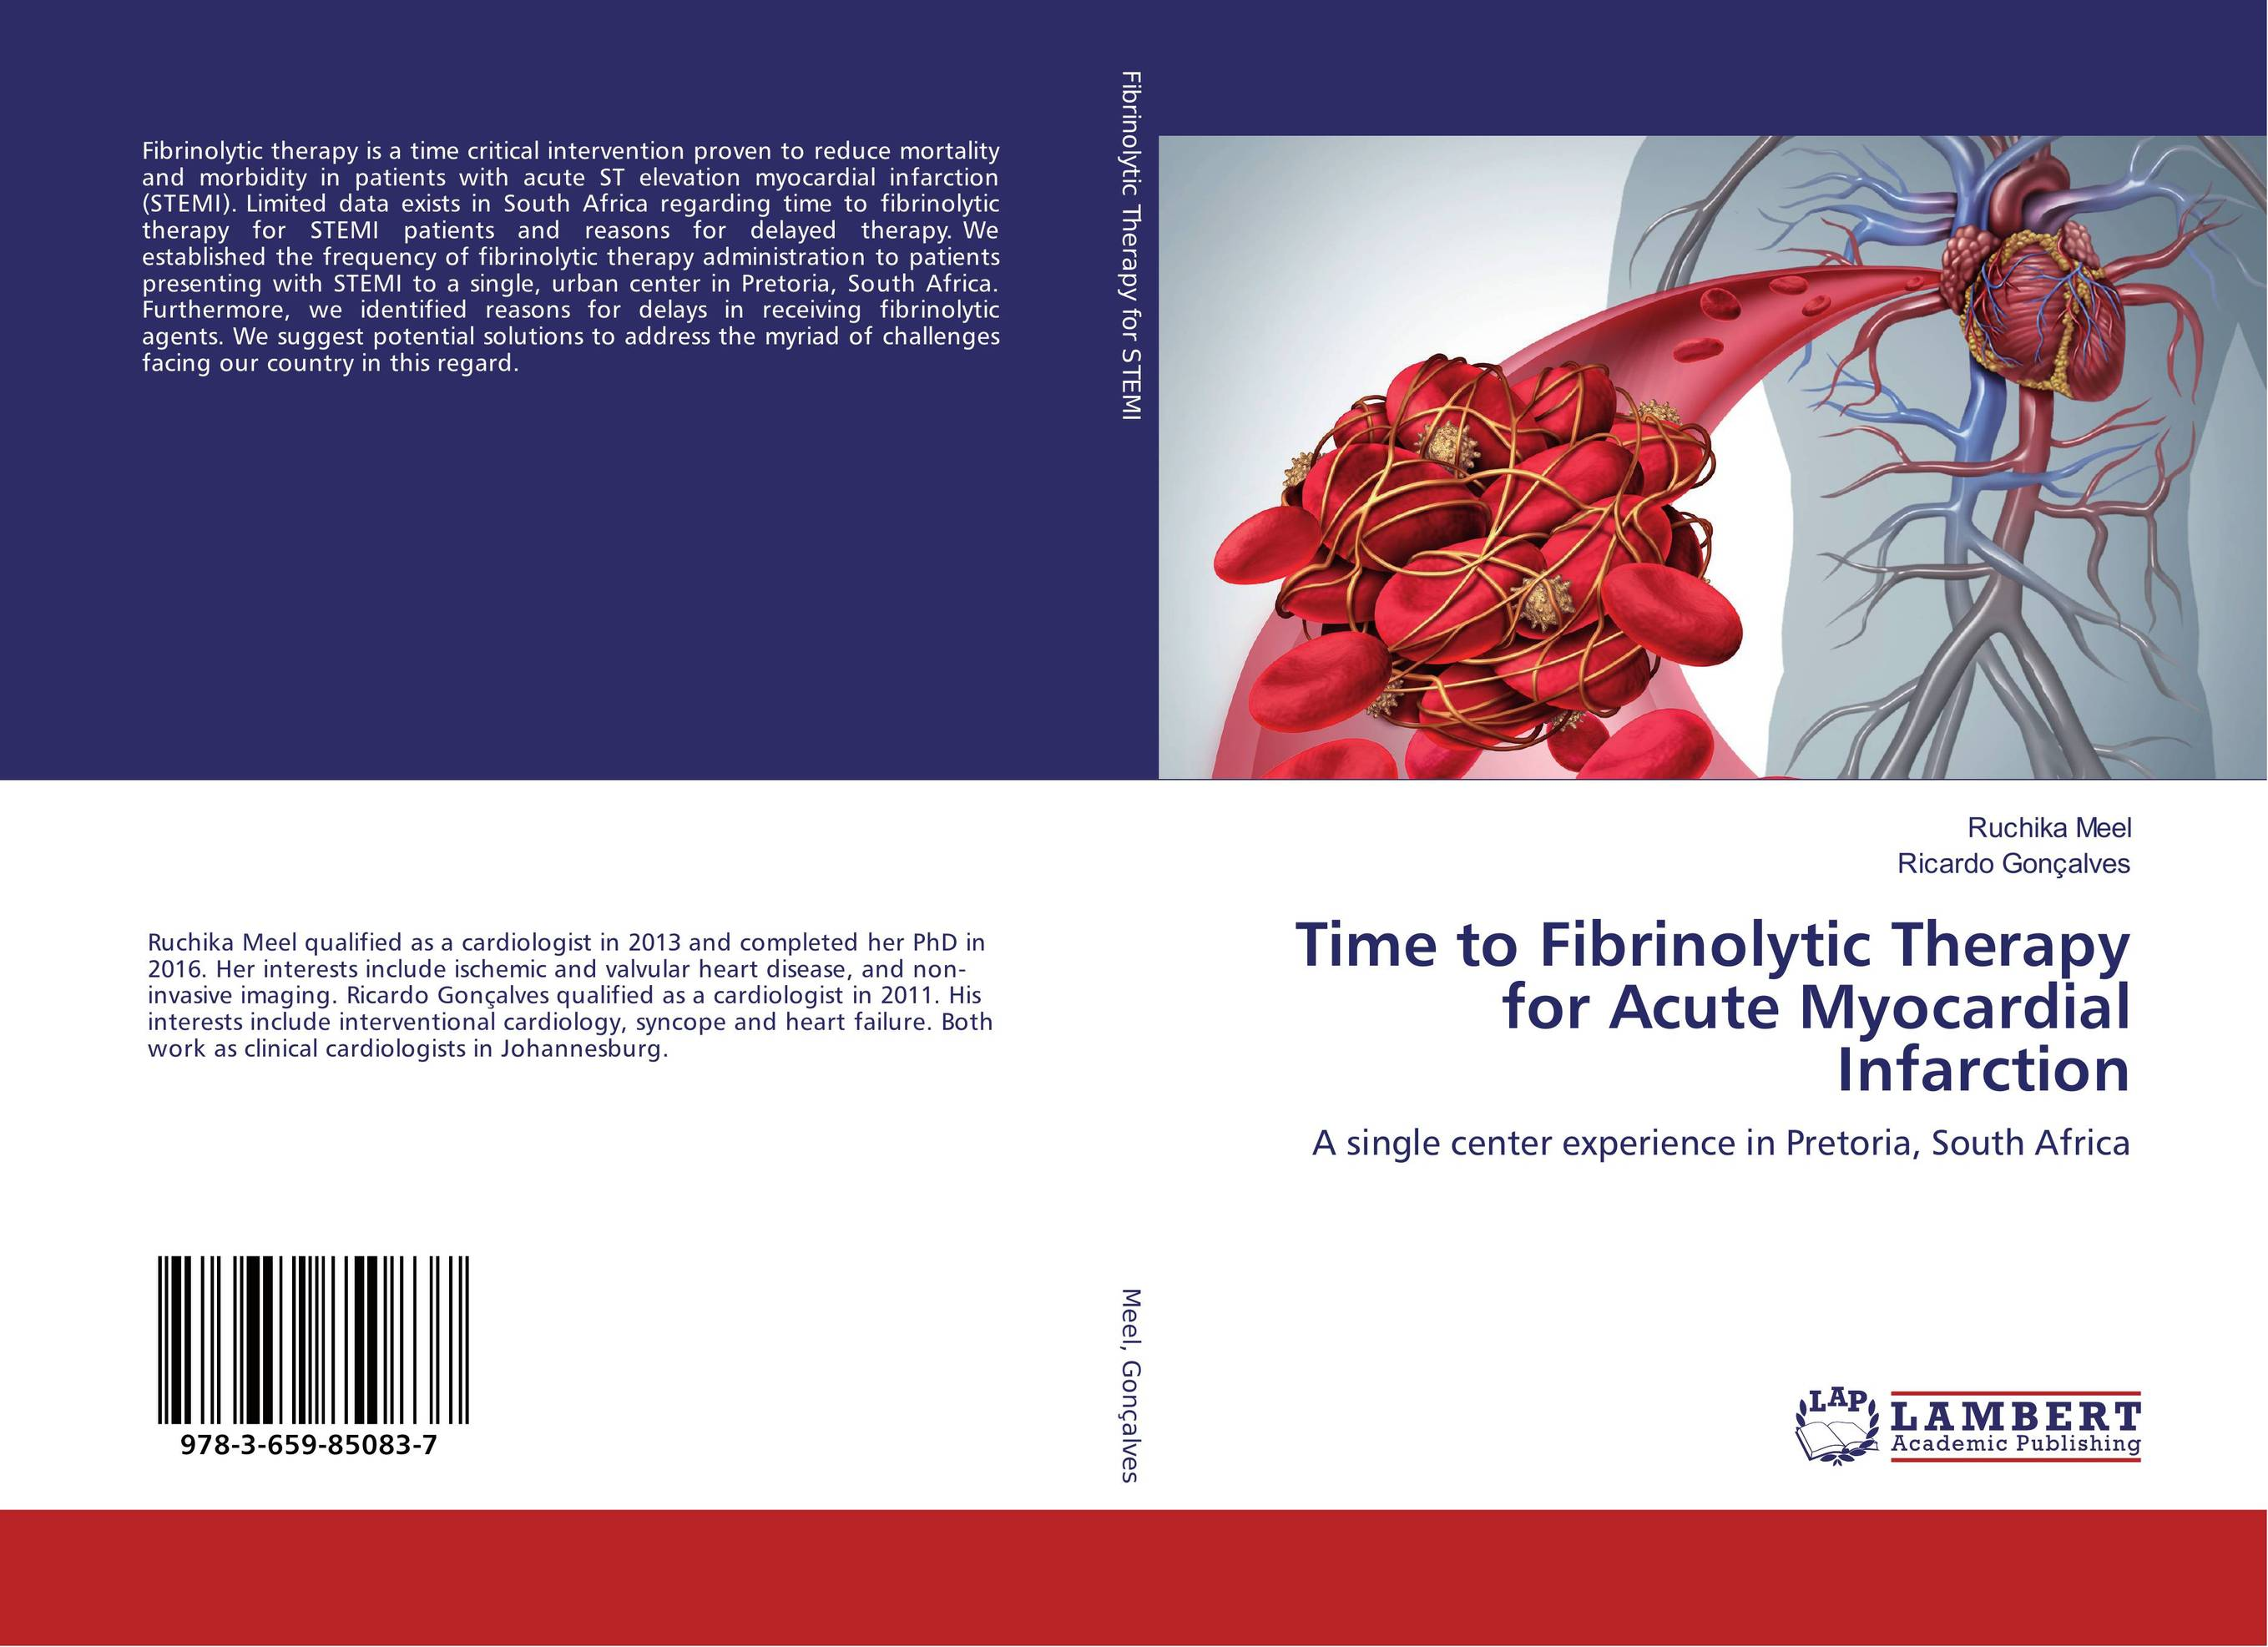 Time to Fibrinolytic Therapy for Acute Myocardial Infarction metabolic syndrome in patients with acute myocardial infarction